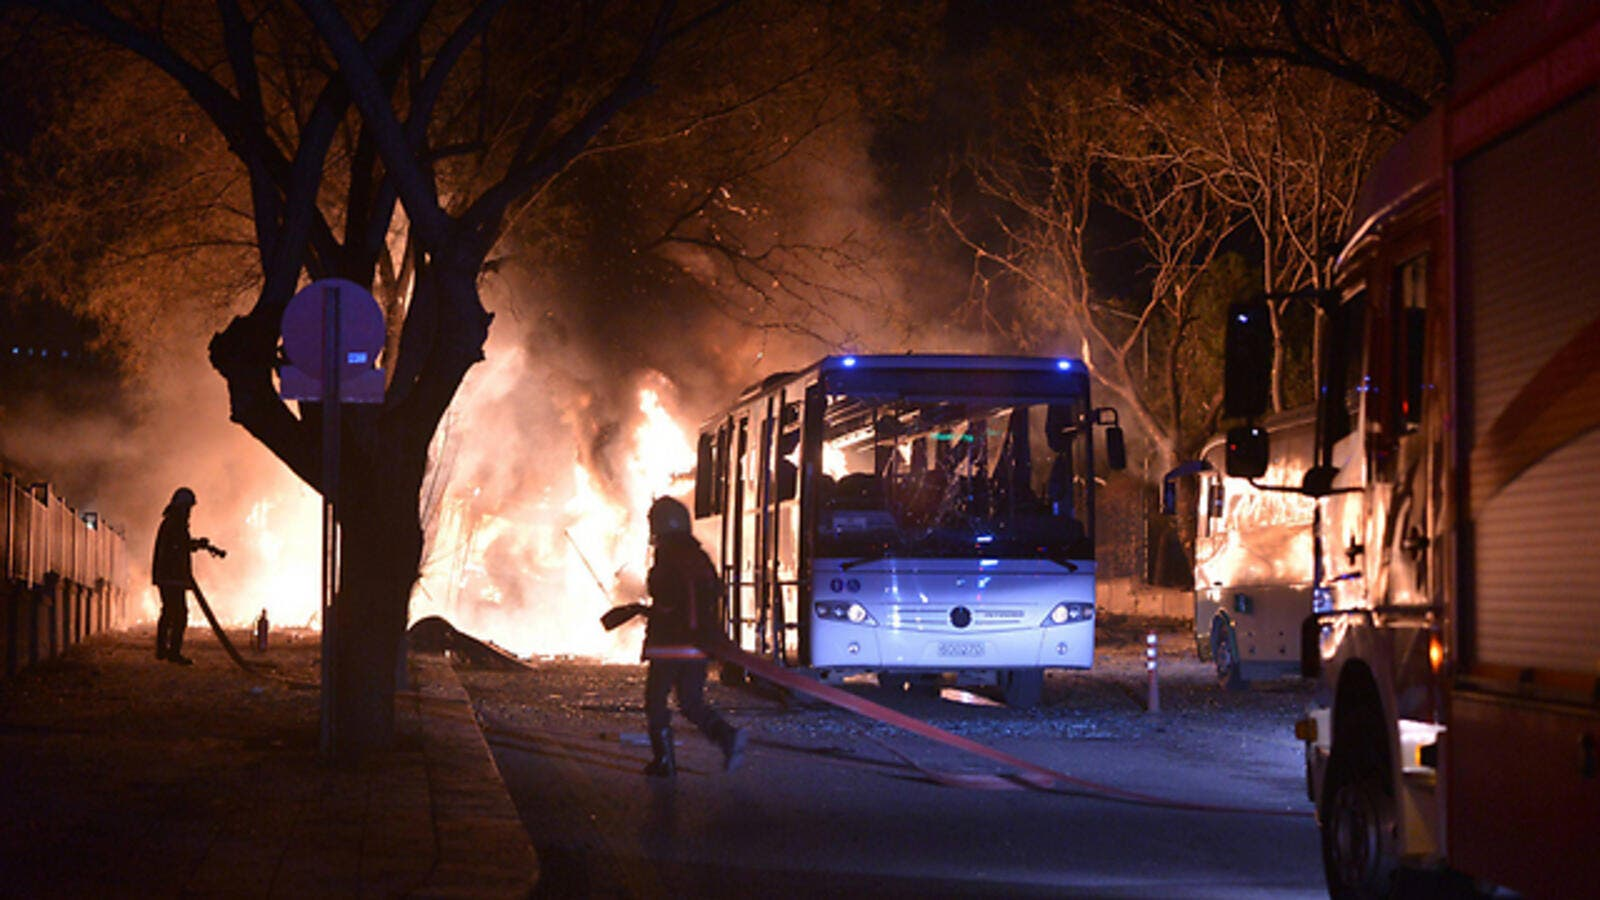 Scene of explosion in Ankara, Turkey. (AFP/File)